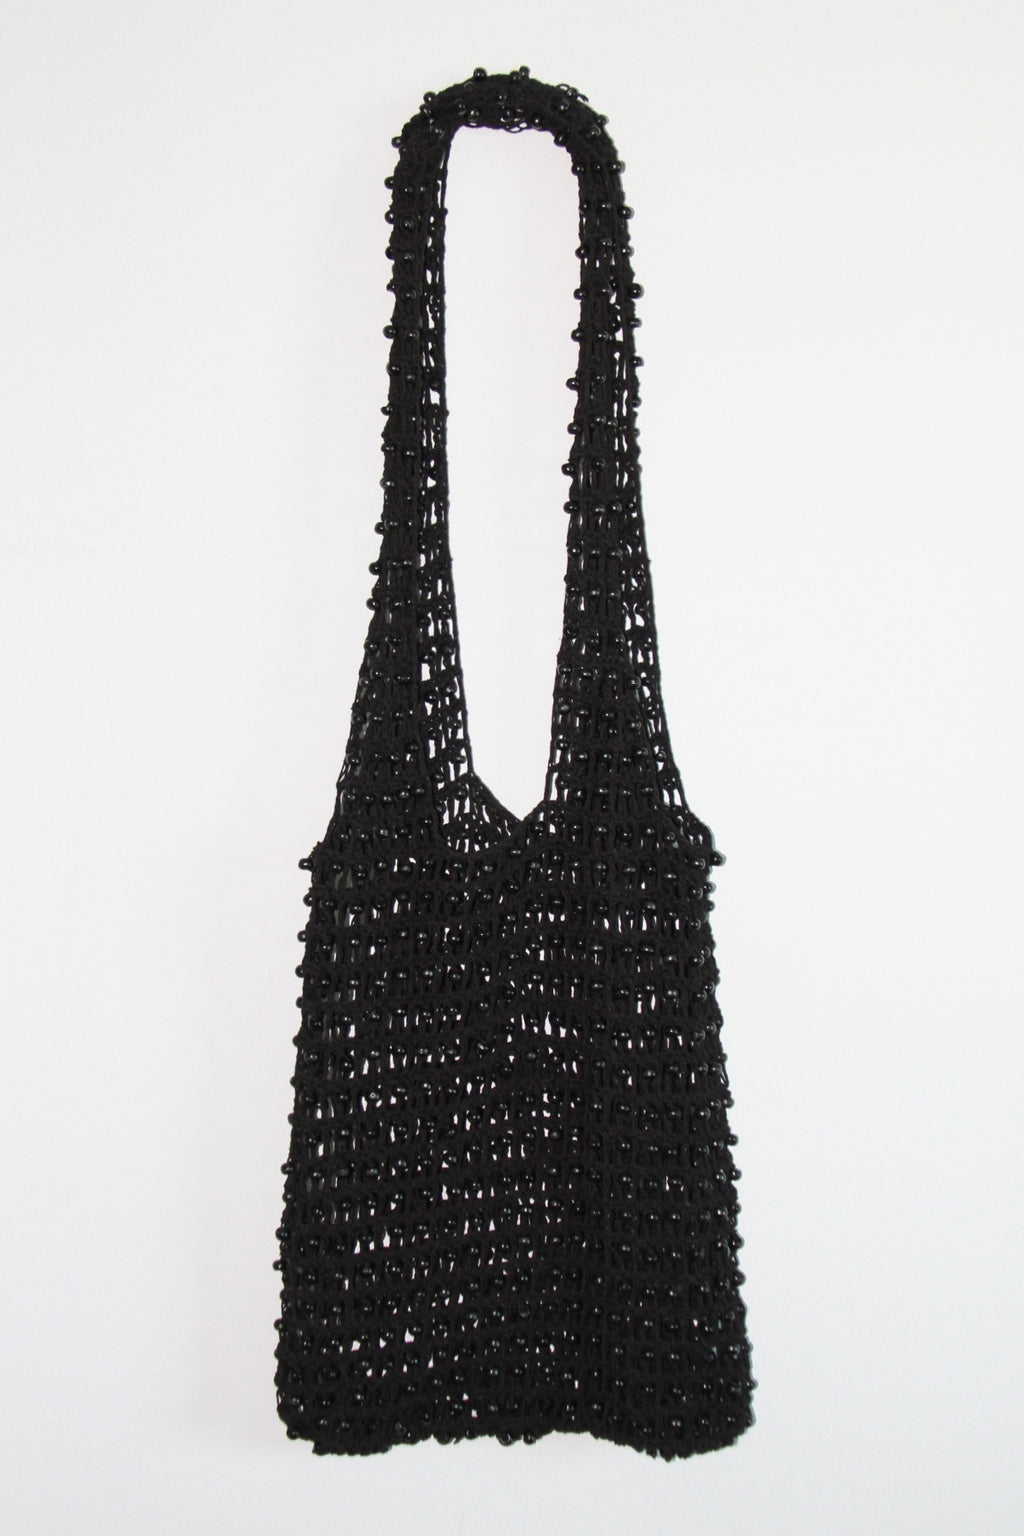 Beaded Shoulder Bag in Midnight Black Cotton - Kardia